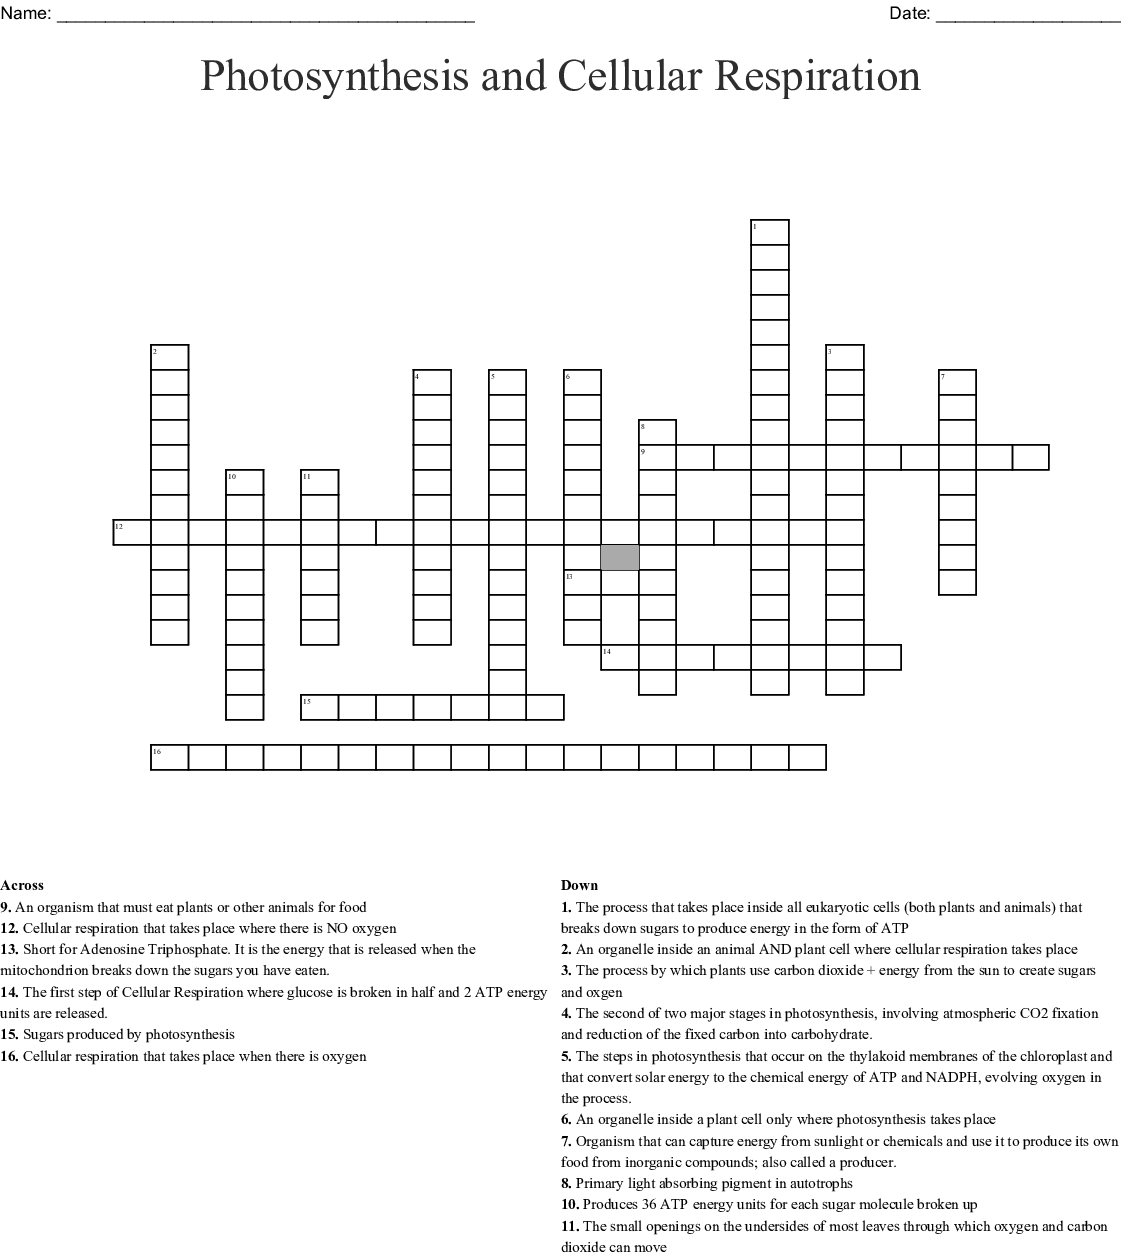 Photosynthesis And Cellular Respiration Crossword Wordmint